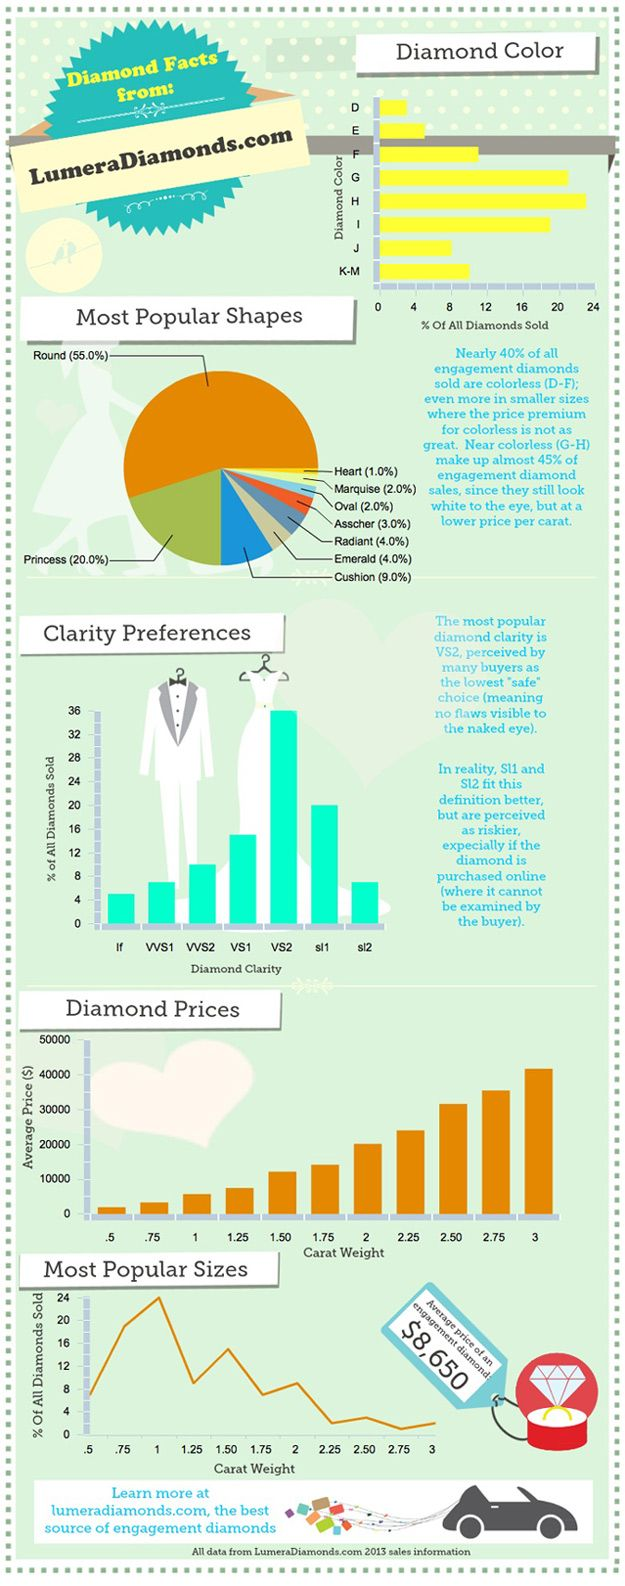 """LumeraDiamonds.com, a leading seller of certified loose diamonds has published a guide to the most common questions customers ask when trying to understand what is typical when buying a loose diamond or diamond engagement ring.The guide is available online at http://www.lumeradiamonds.com/buying-diamonds/diamond-guide and covers popular questions such as """"What is the most popular size and shape of engagement diamond?"""" and """"What is the average amount spent on a diamond?"""""""